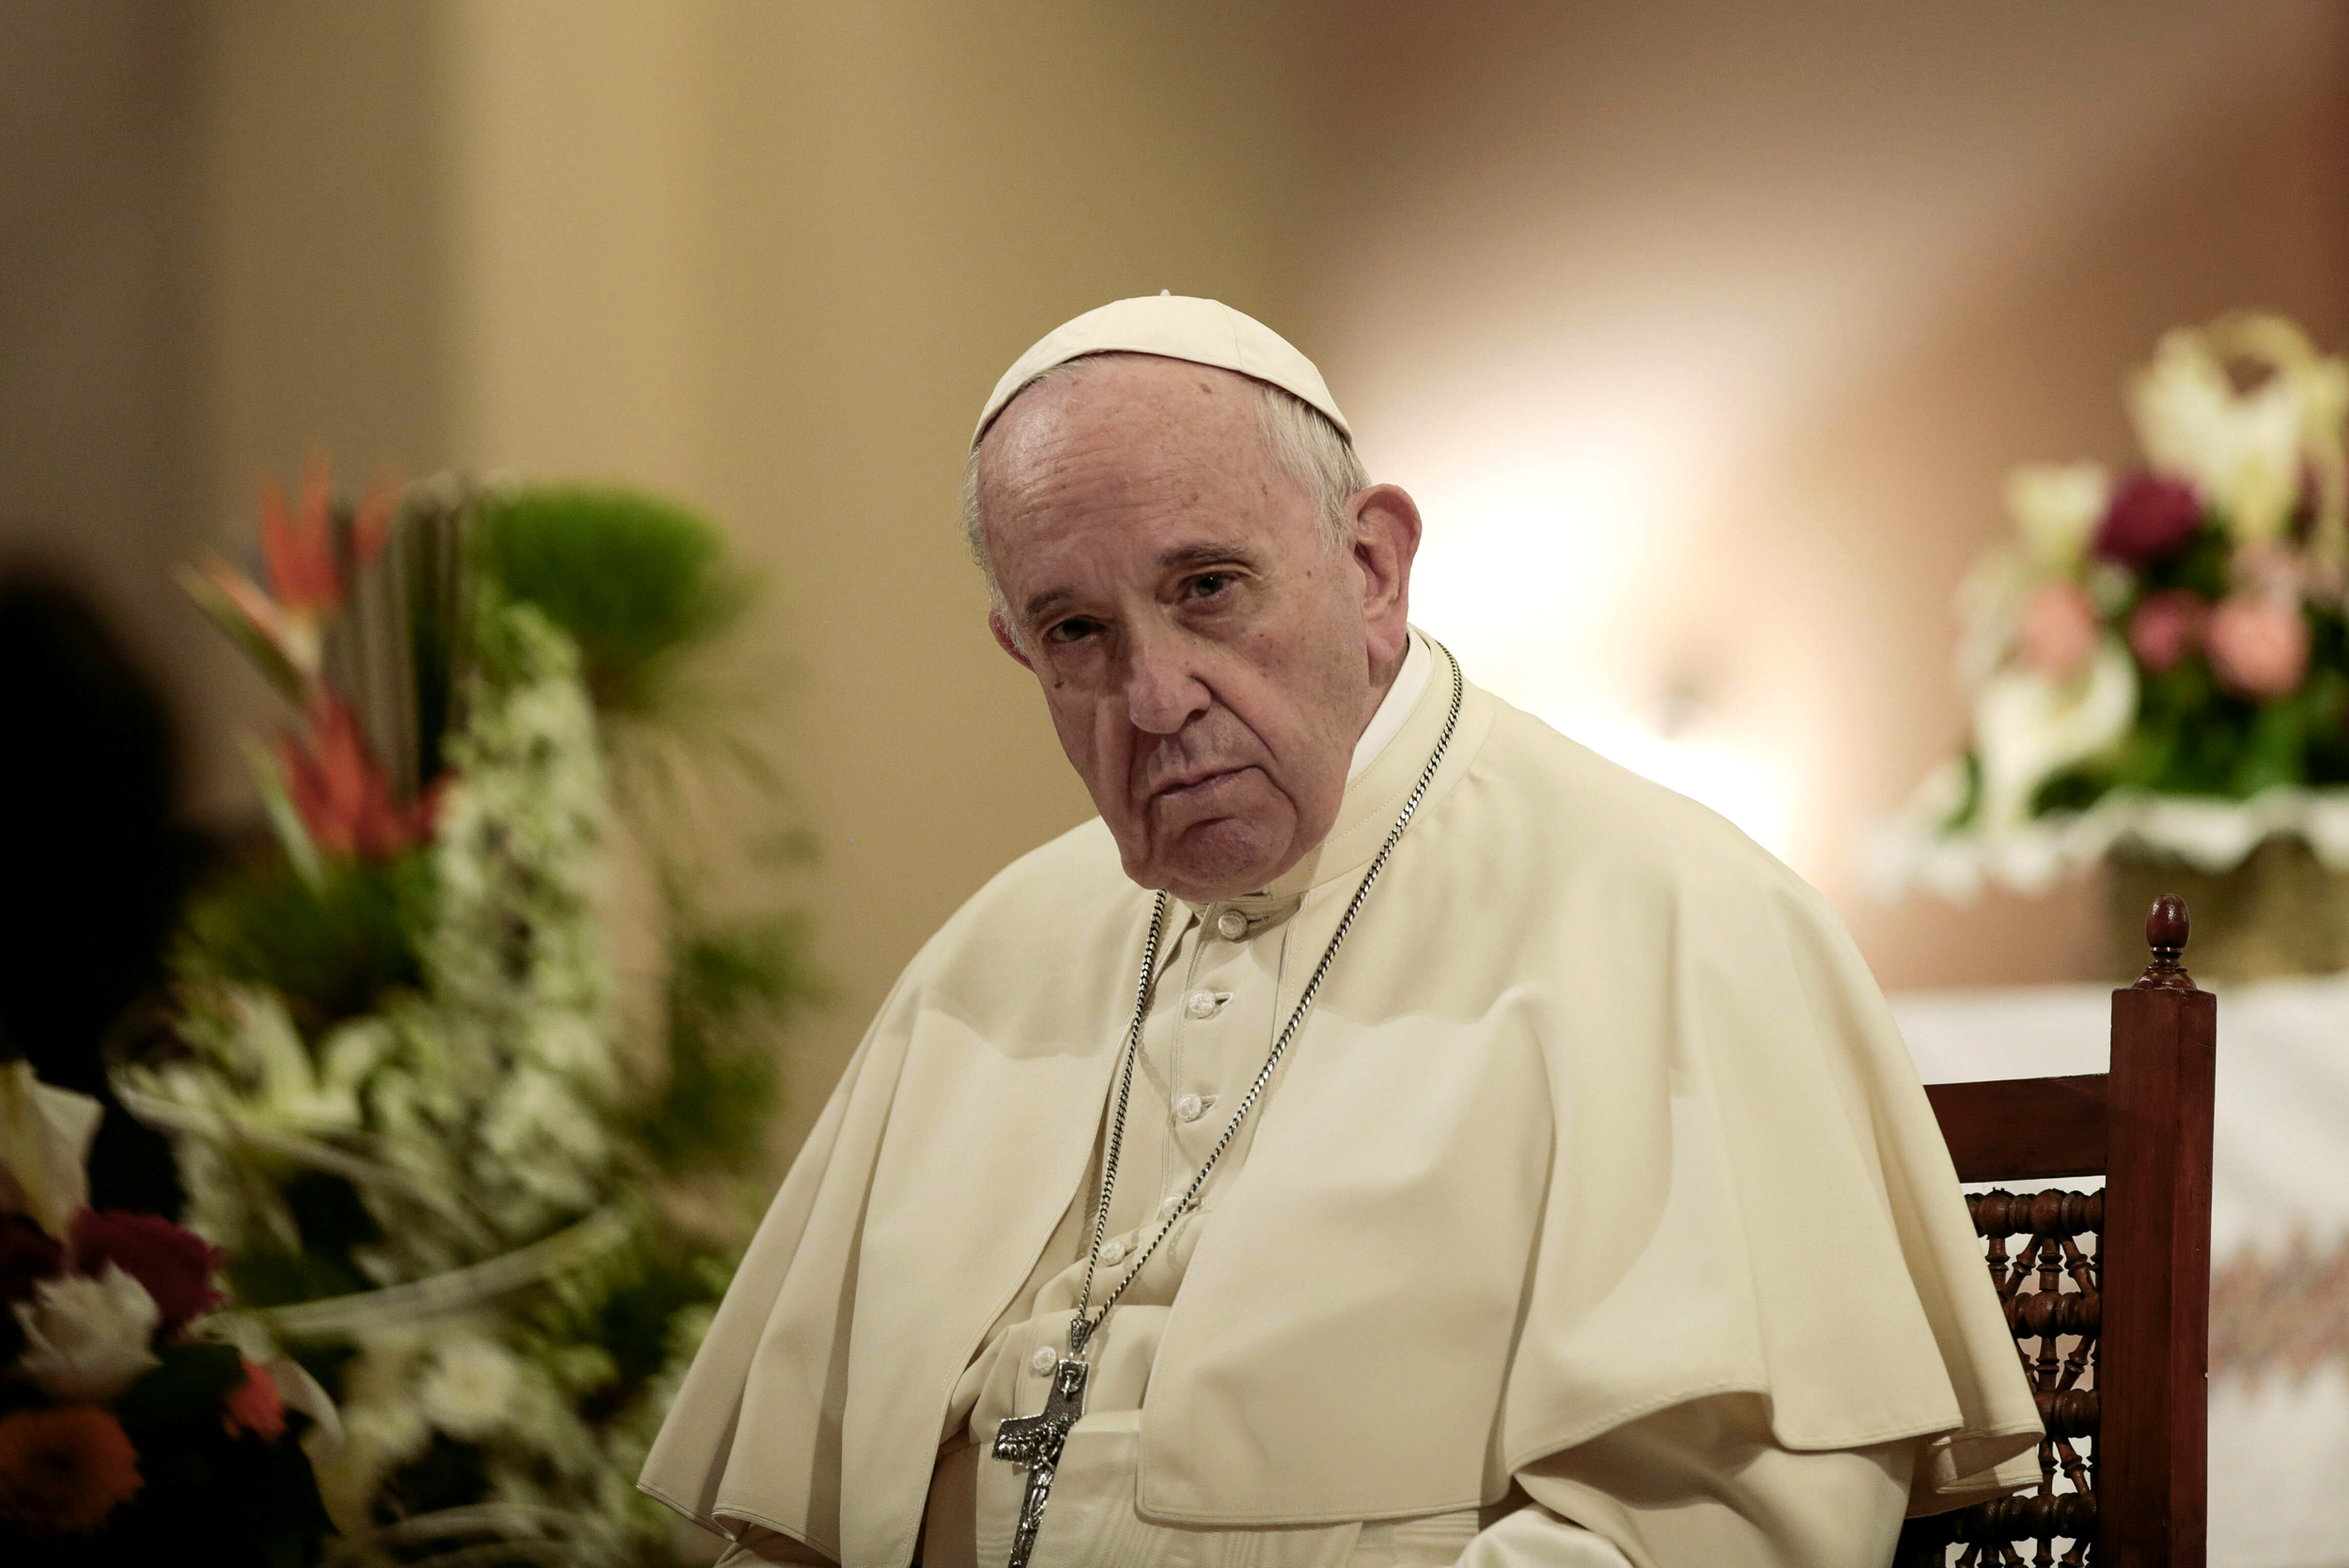 Pope Francis said that Catholic women have 'legitimate claims' for